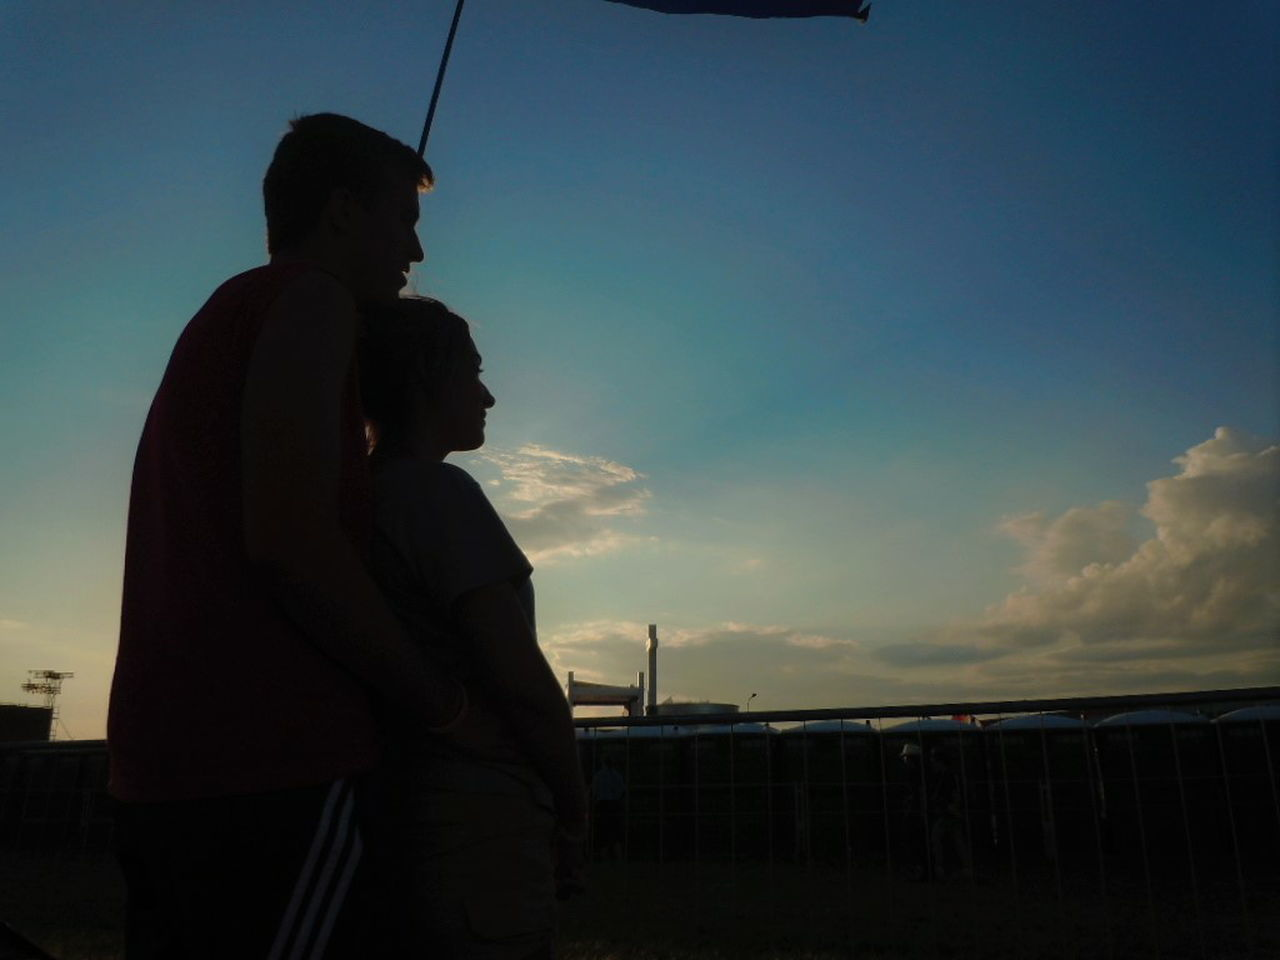 sky, two people, standing, outdoors, leisure activity, side view, togetherness, silhouette, real people, cloud - sky, lifestyles, sunset, men, day, adult, people